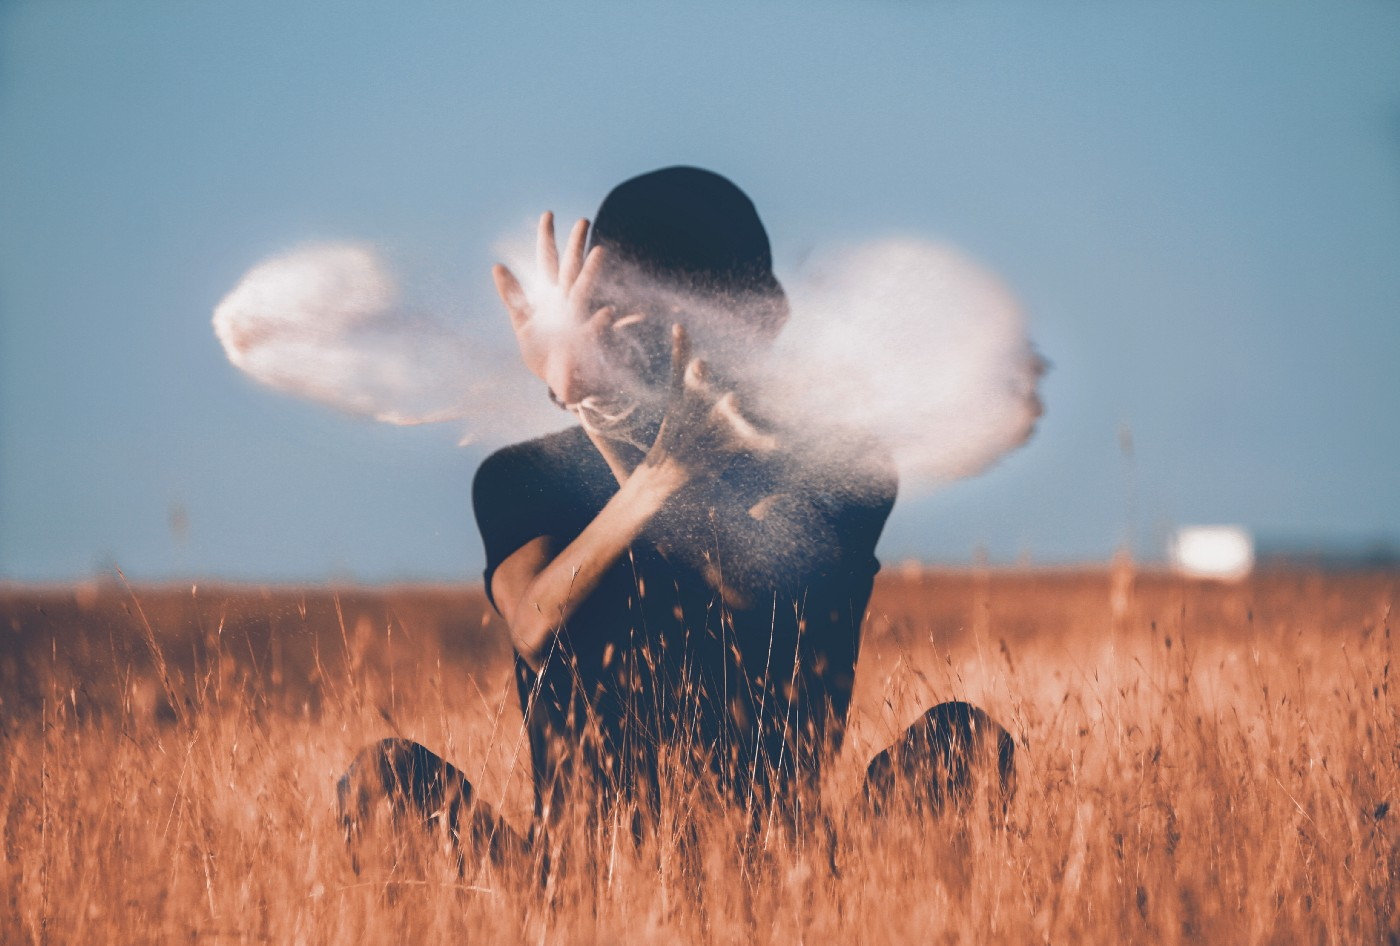 person whose face is obscured by a haze sitting in a wheat